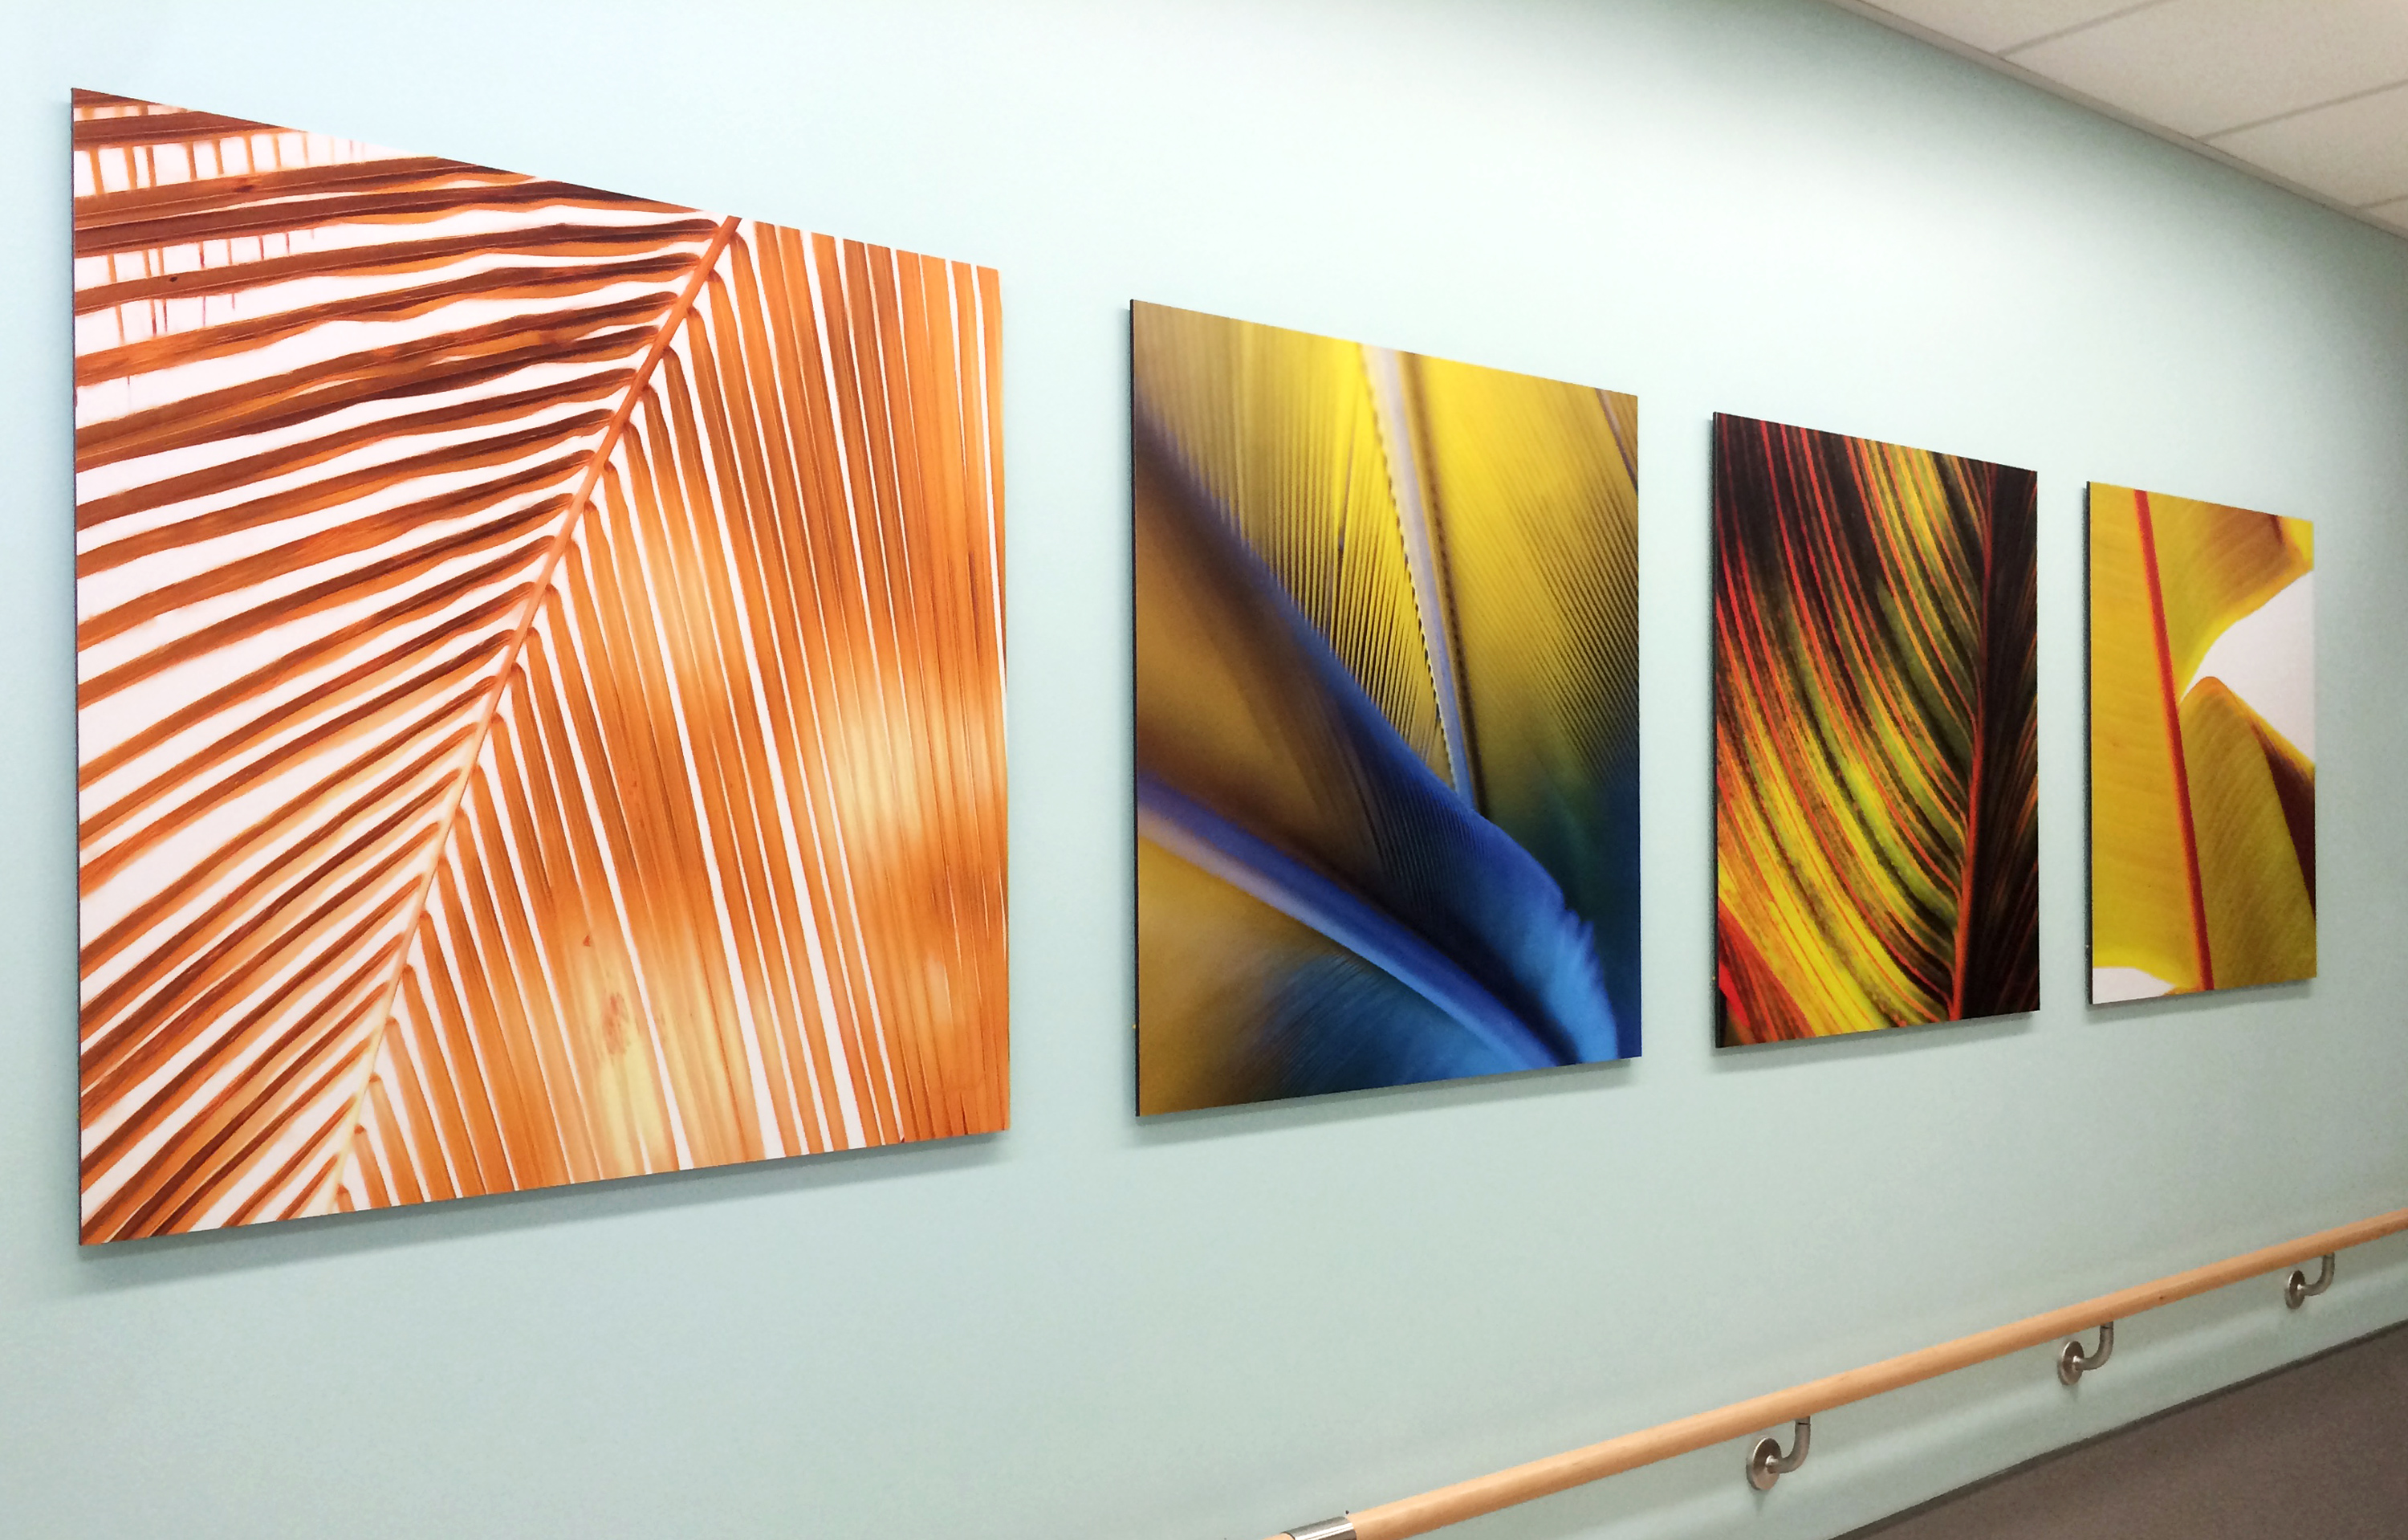 Photo of a palm leaves image on Moxie panels in hospital waiting area